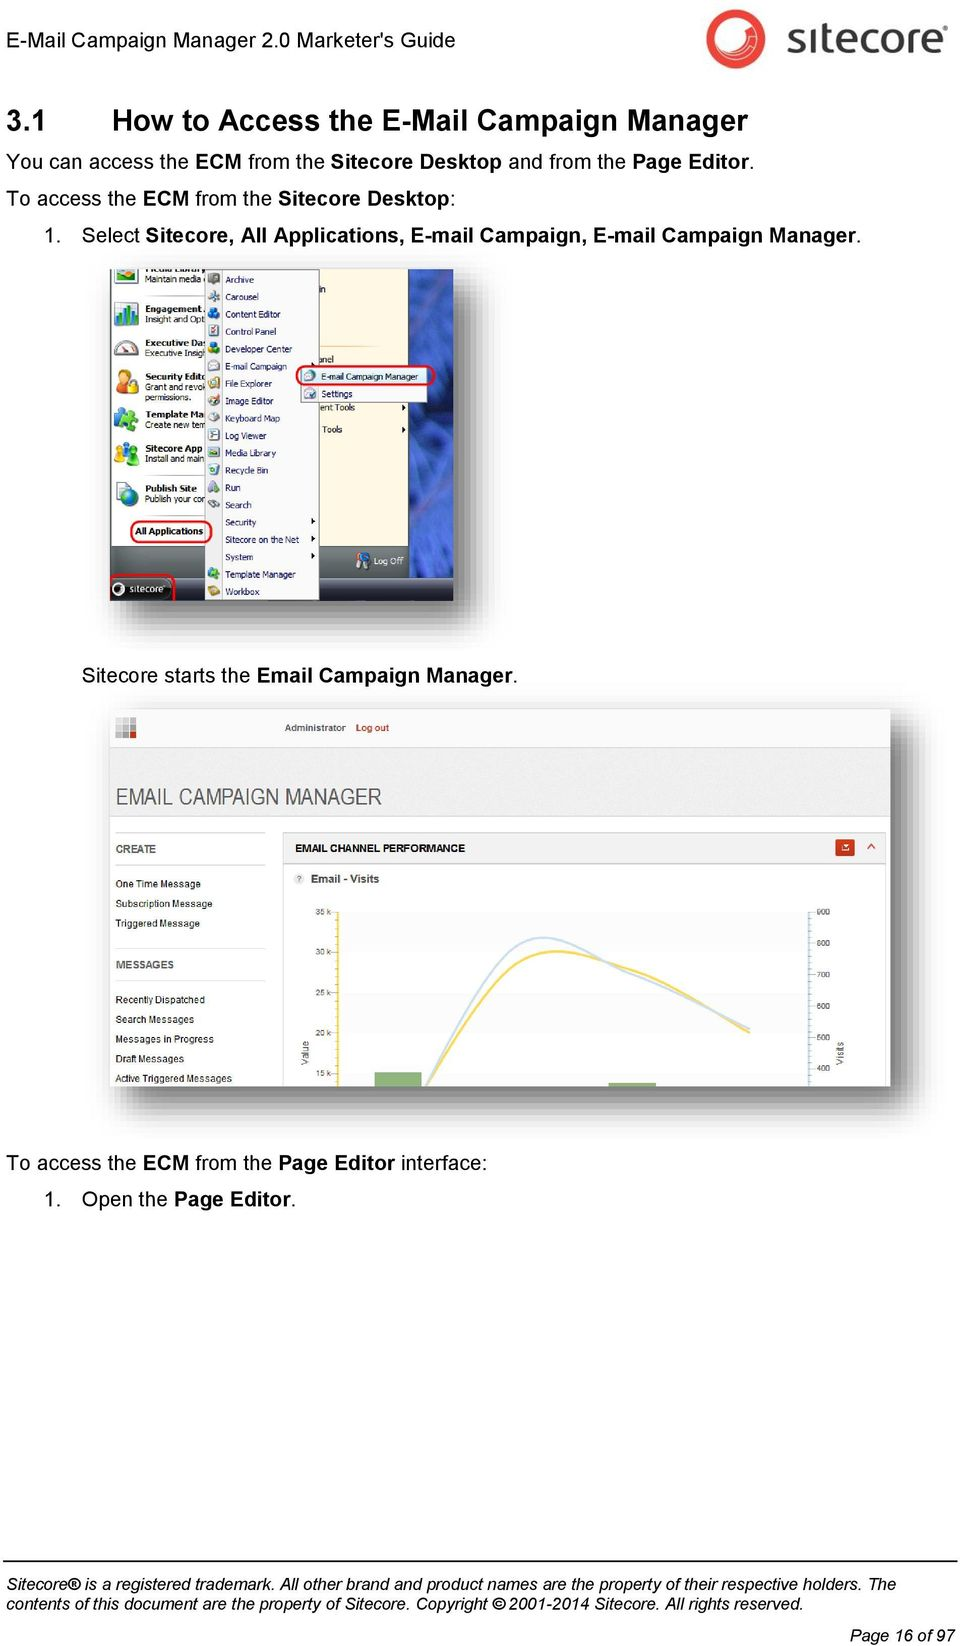 Select Sitecore, All Applications, E-mail Campaign, E-mail Campaign Manager.